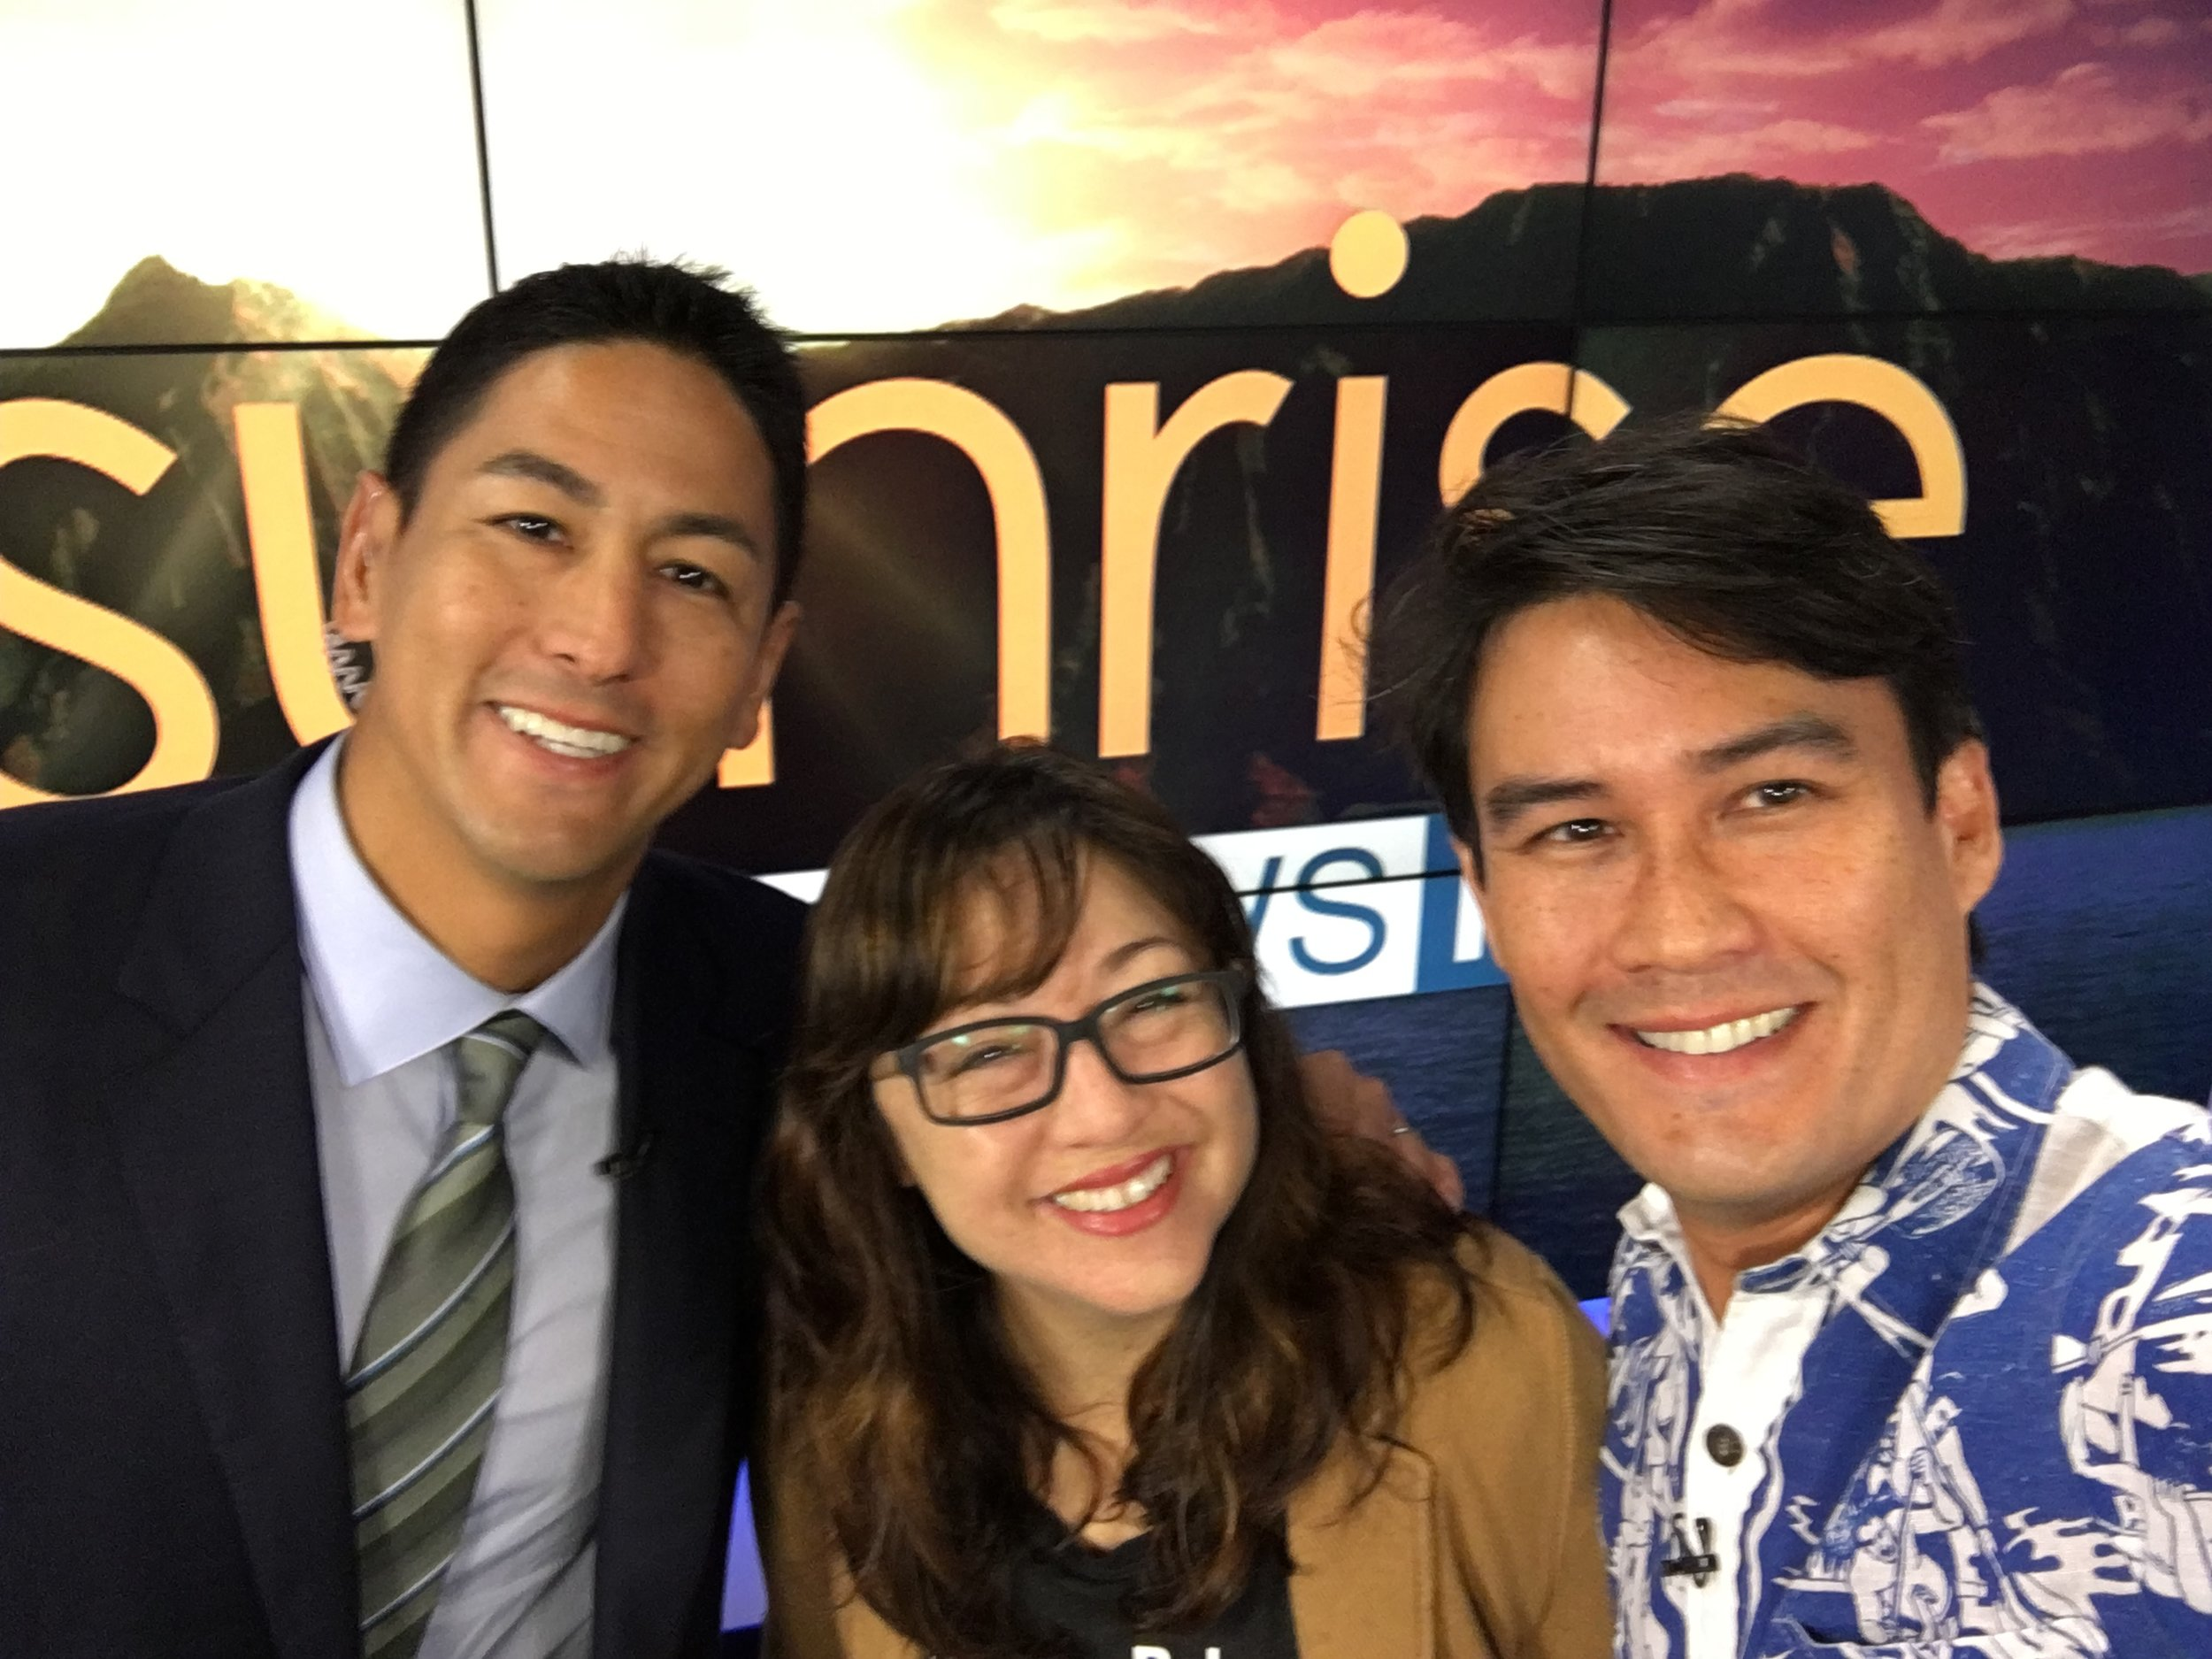 - Mahalo to Hawaii News Now and Steve Uyehara for helping spread the word about OUT OF STATE's upcoming screening at #HIFF37!